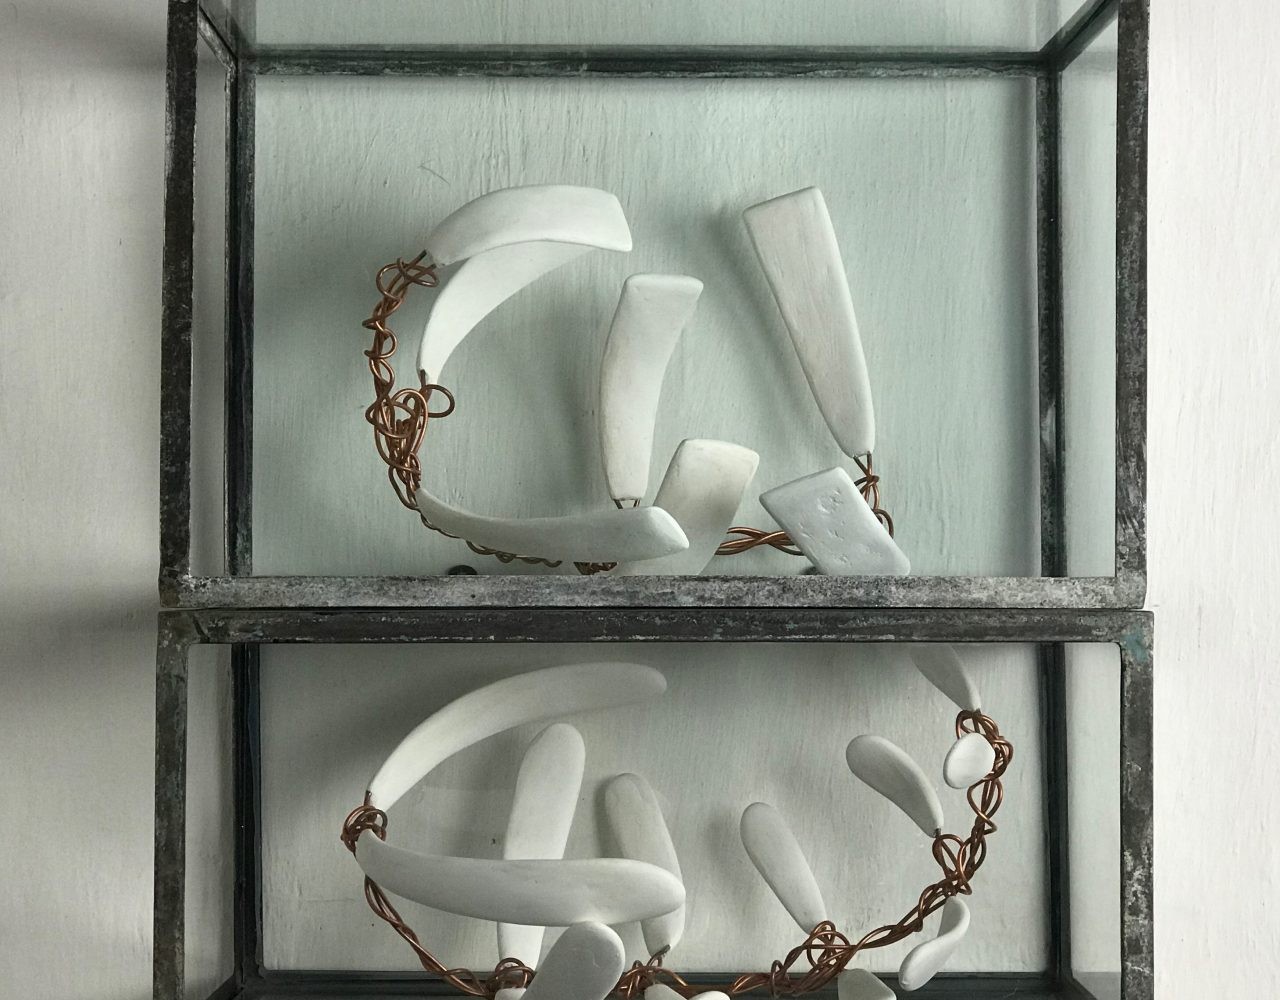 SEM TÍTULO / Ferro, vidro, gesso e cobre </br>